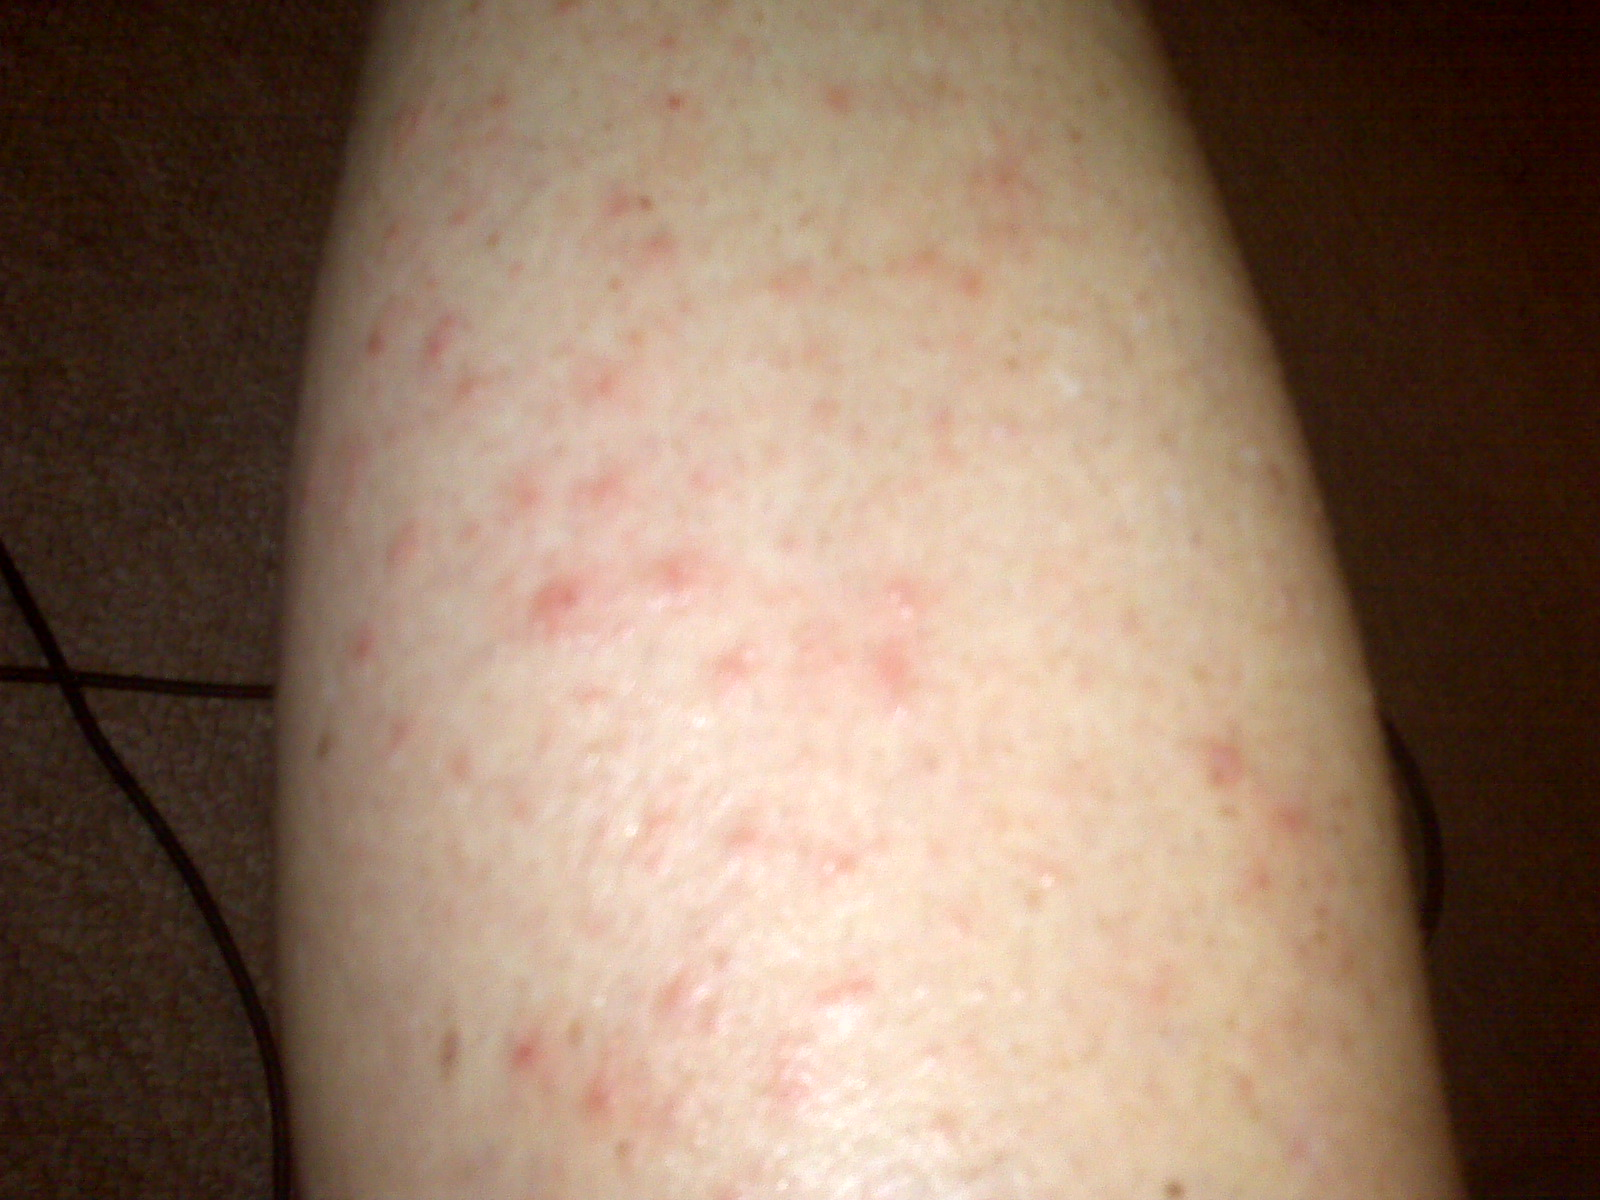 rash on back of leg #9